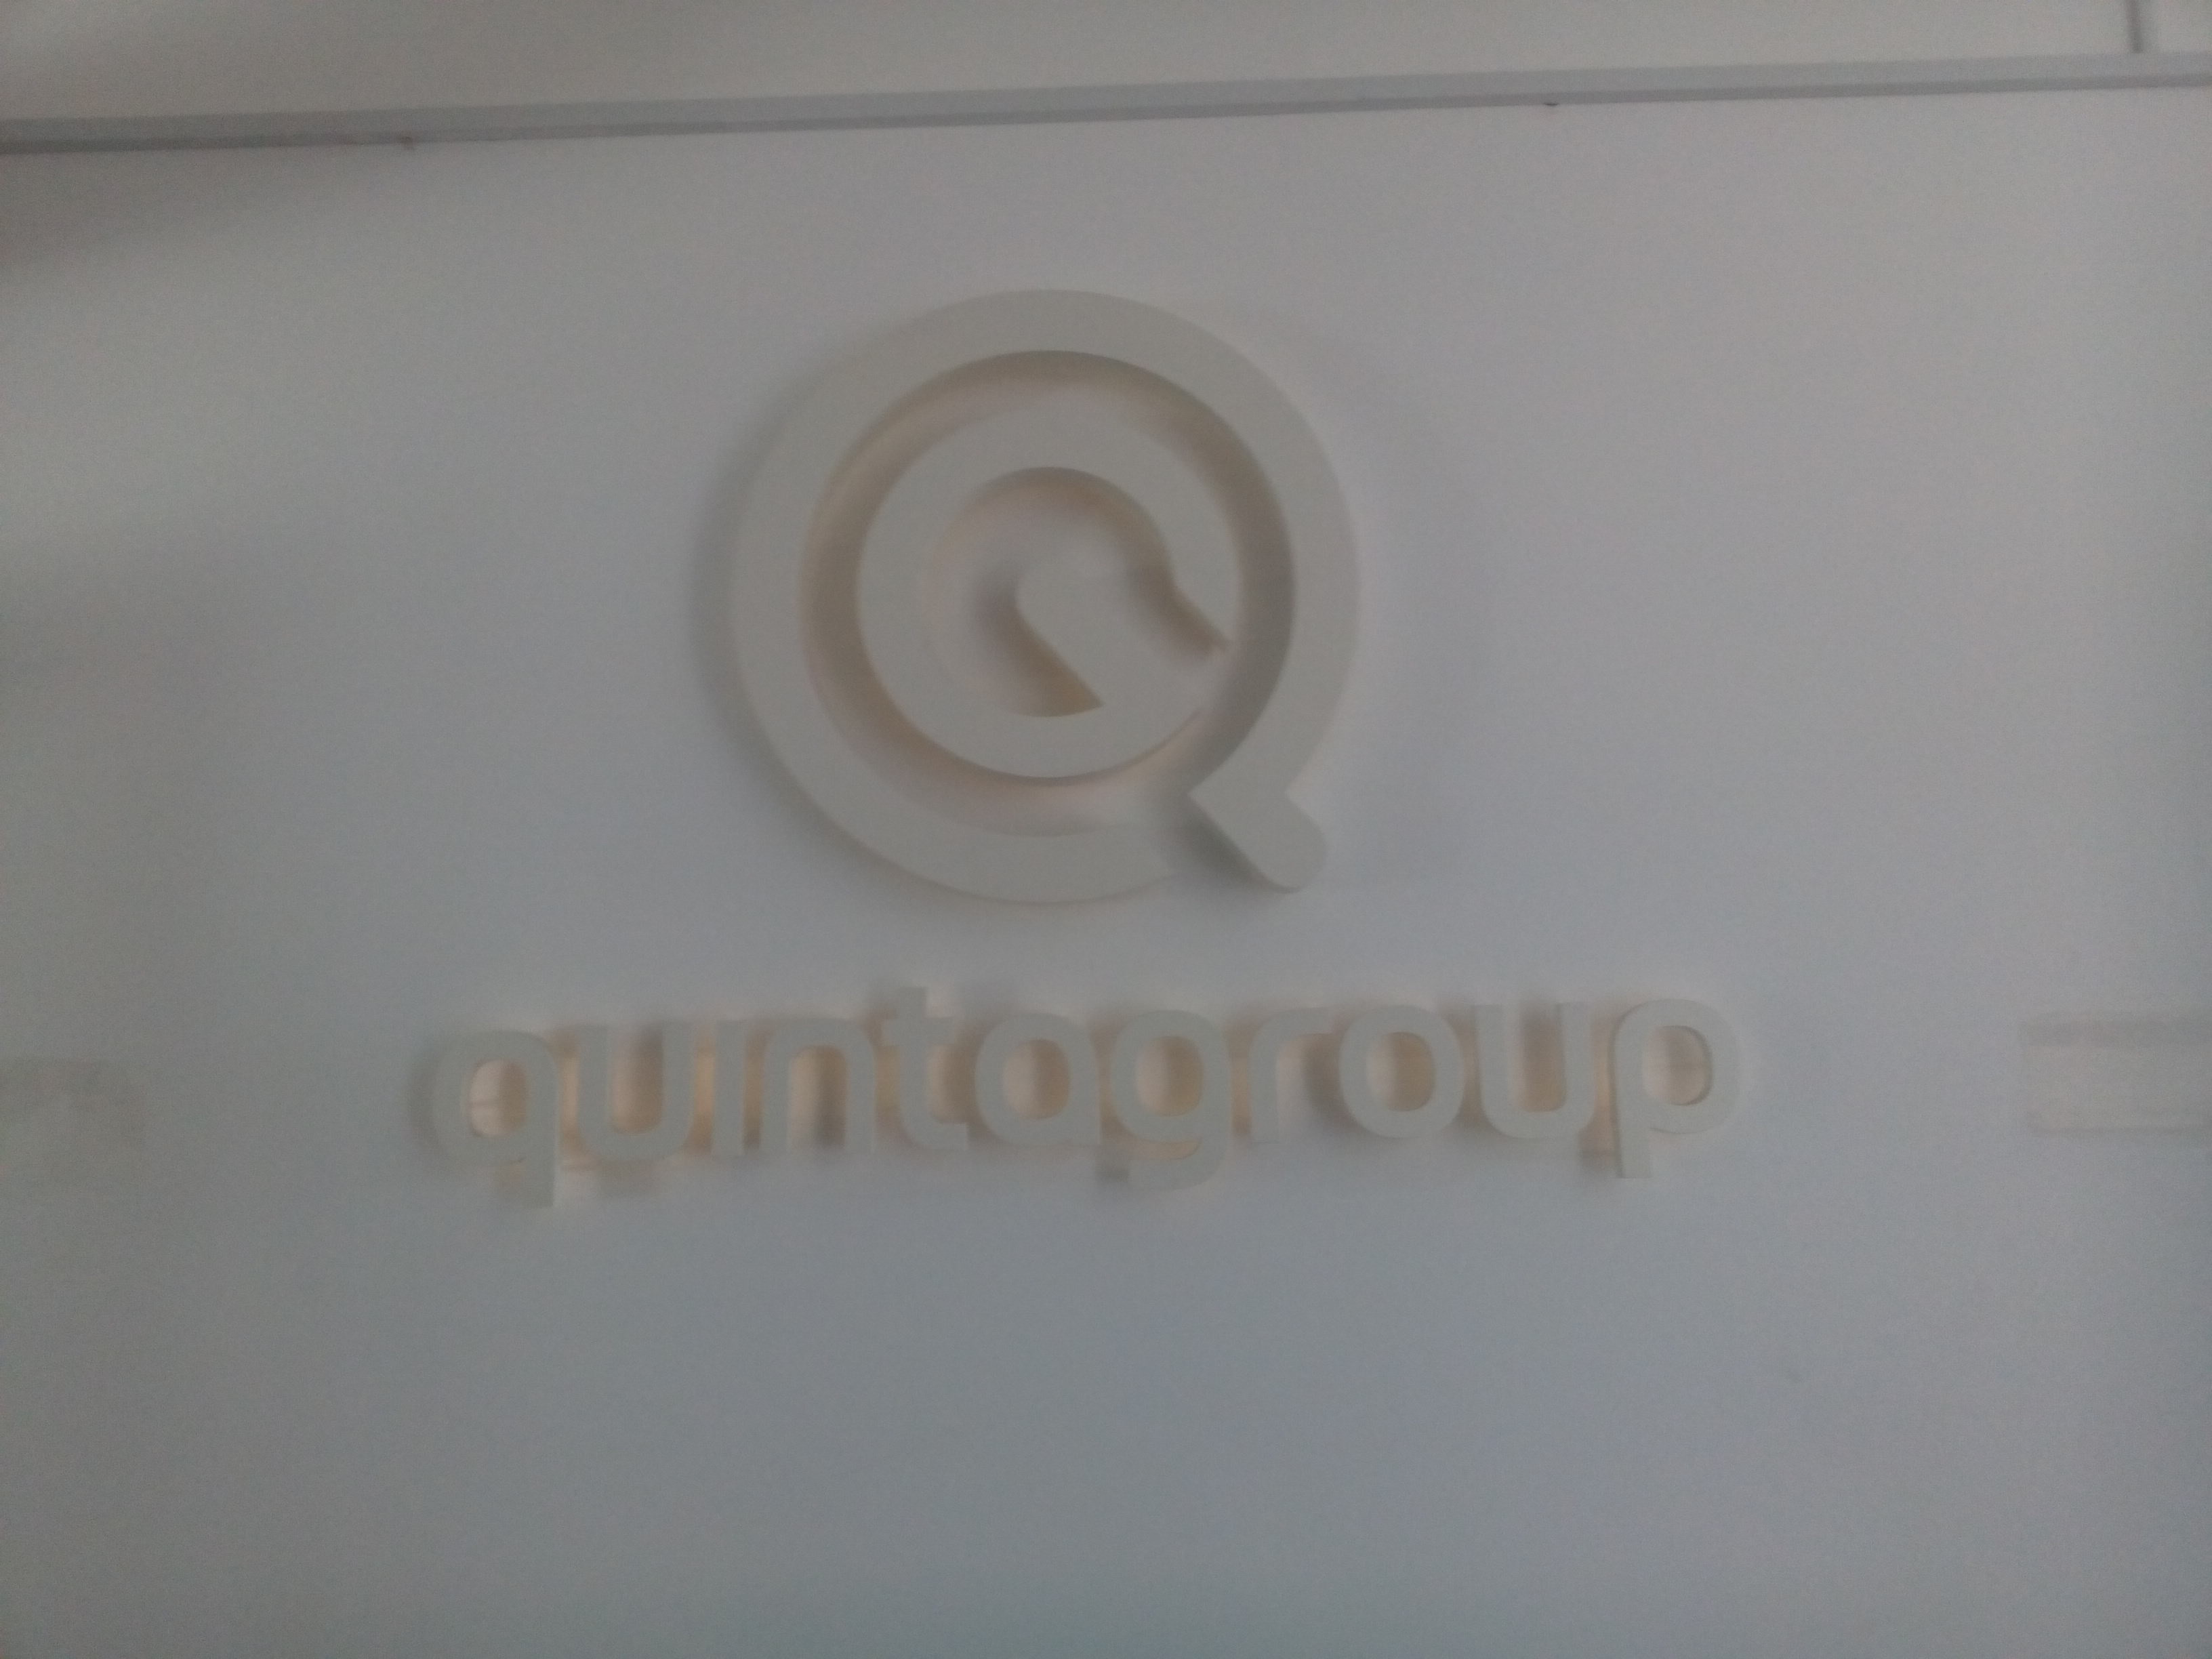 A white sign on a white wall saying 'quintagroup'